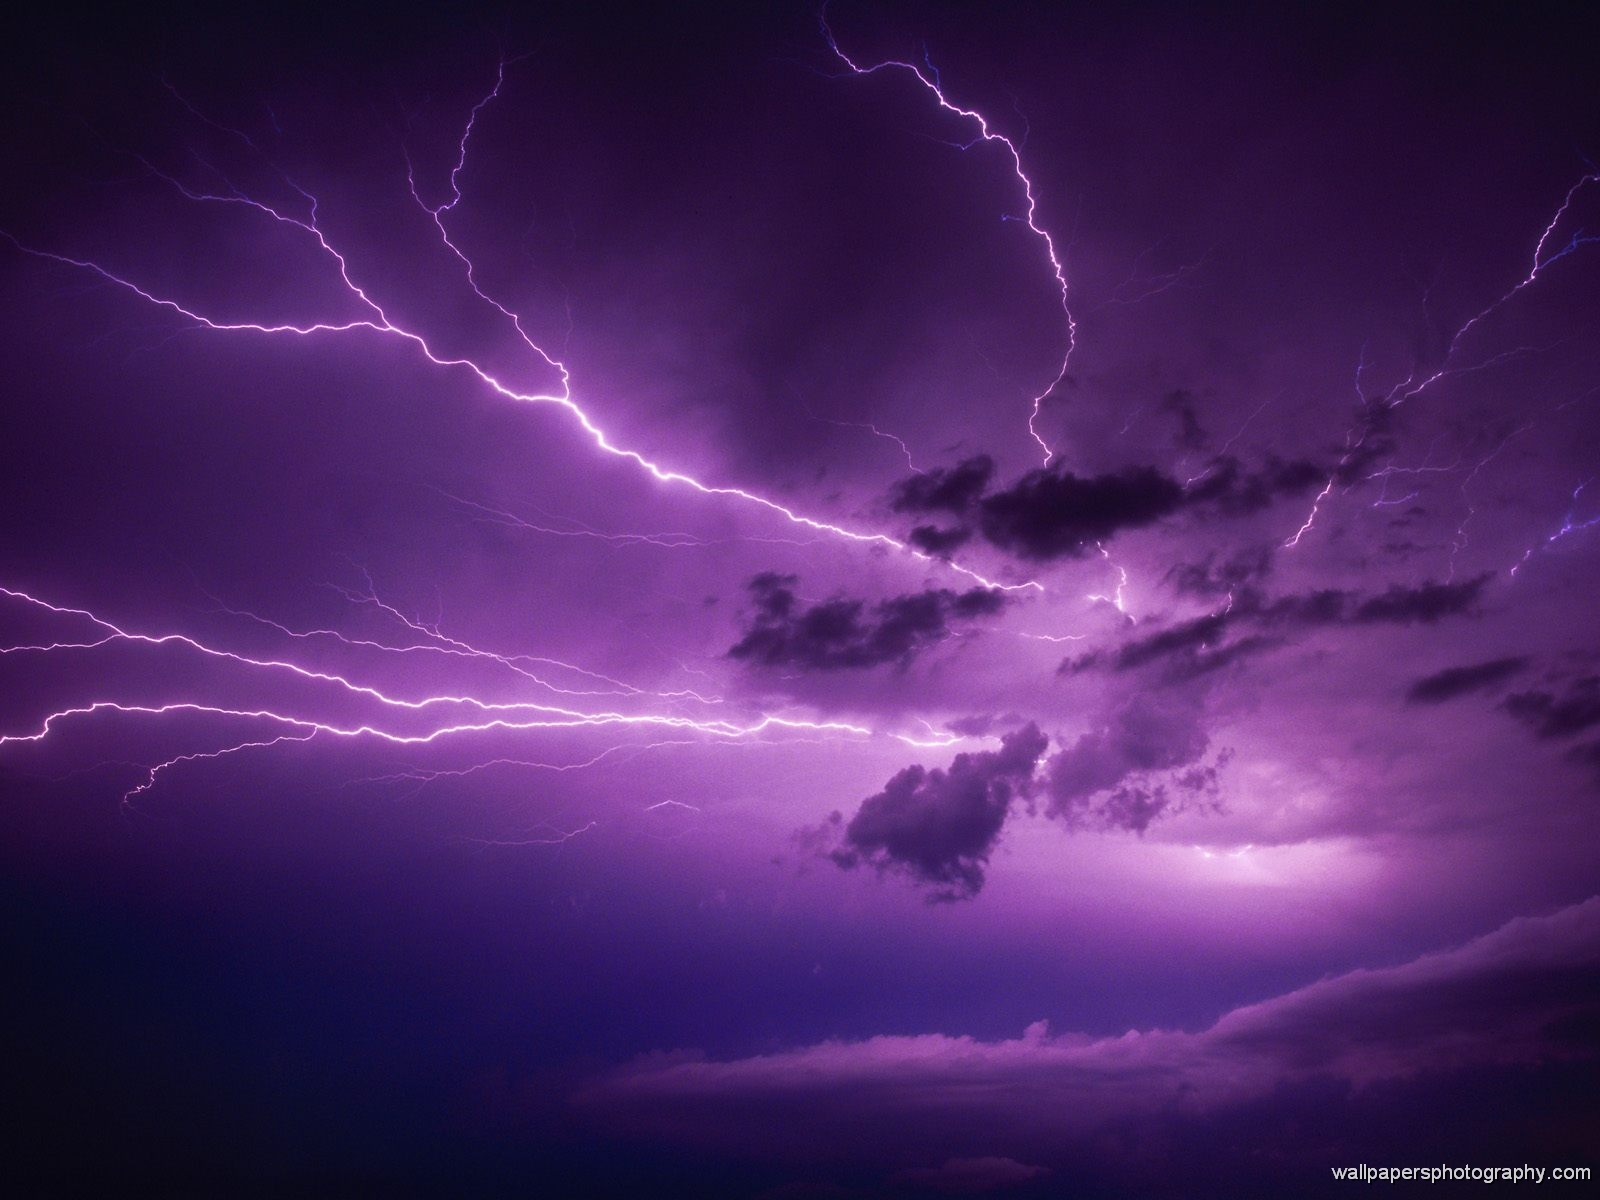 Thunder and lighting Wallpaper Print Posters 1600x1200